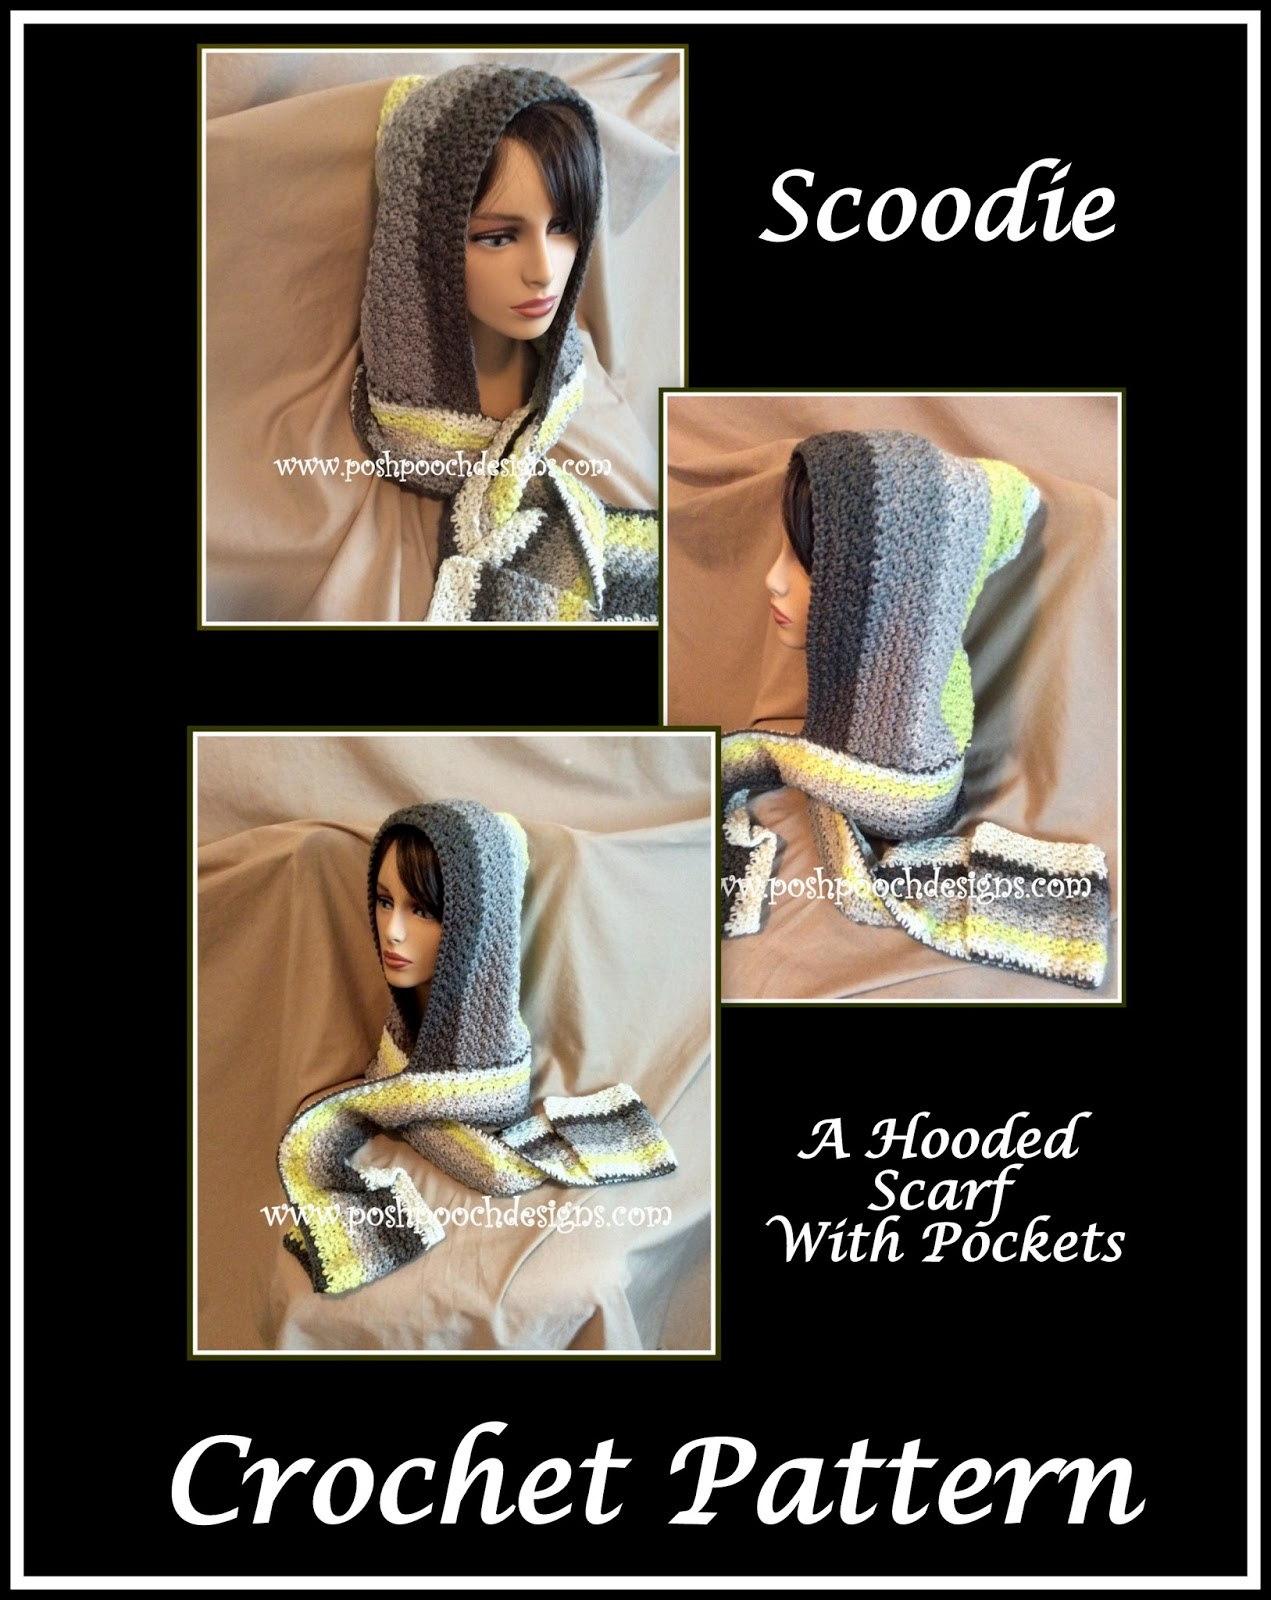 Free Crochet Pattern For Hooded Scarf With Pockets Awesome Decorating Design